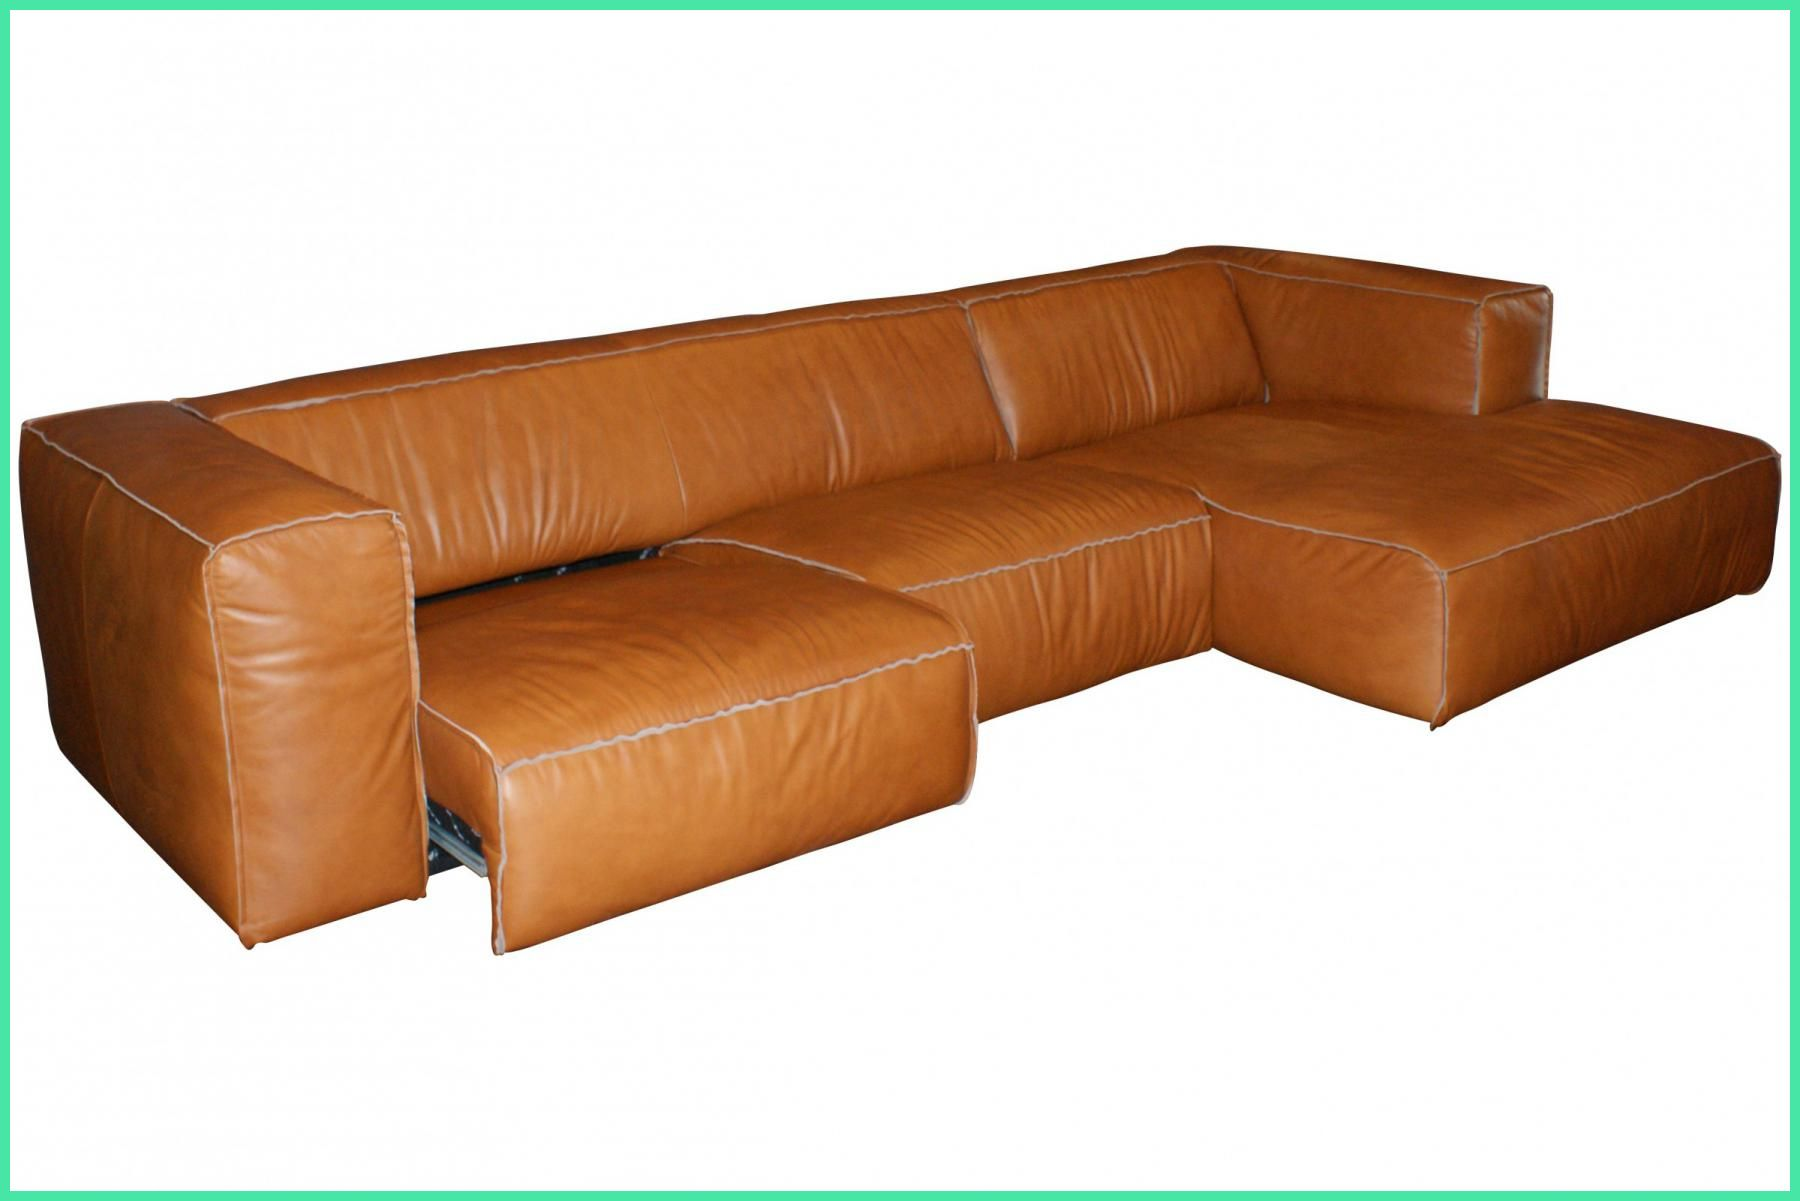 19 Fröhlich Sofa Cognac Leder In 2020 Mahogany Bedroom Furniture Furniture Couch